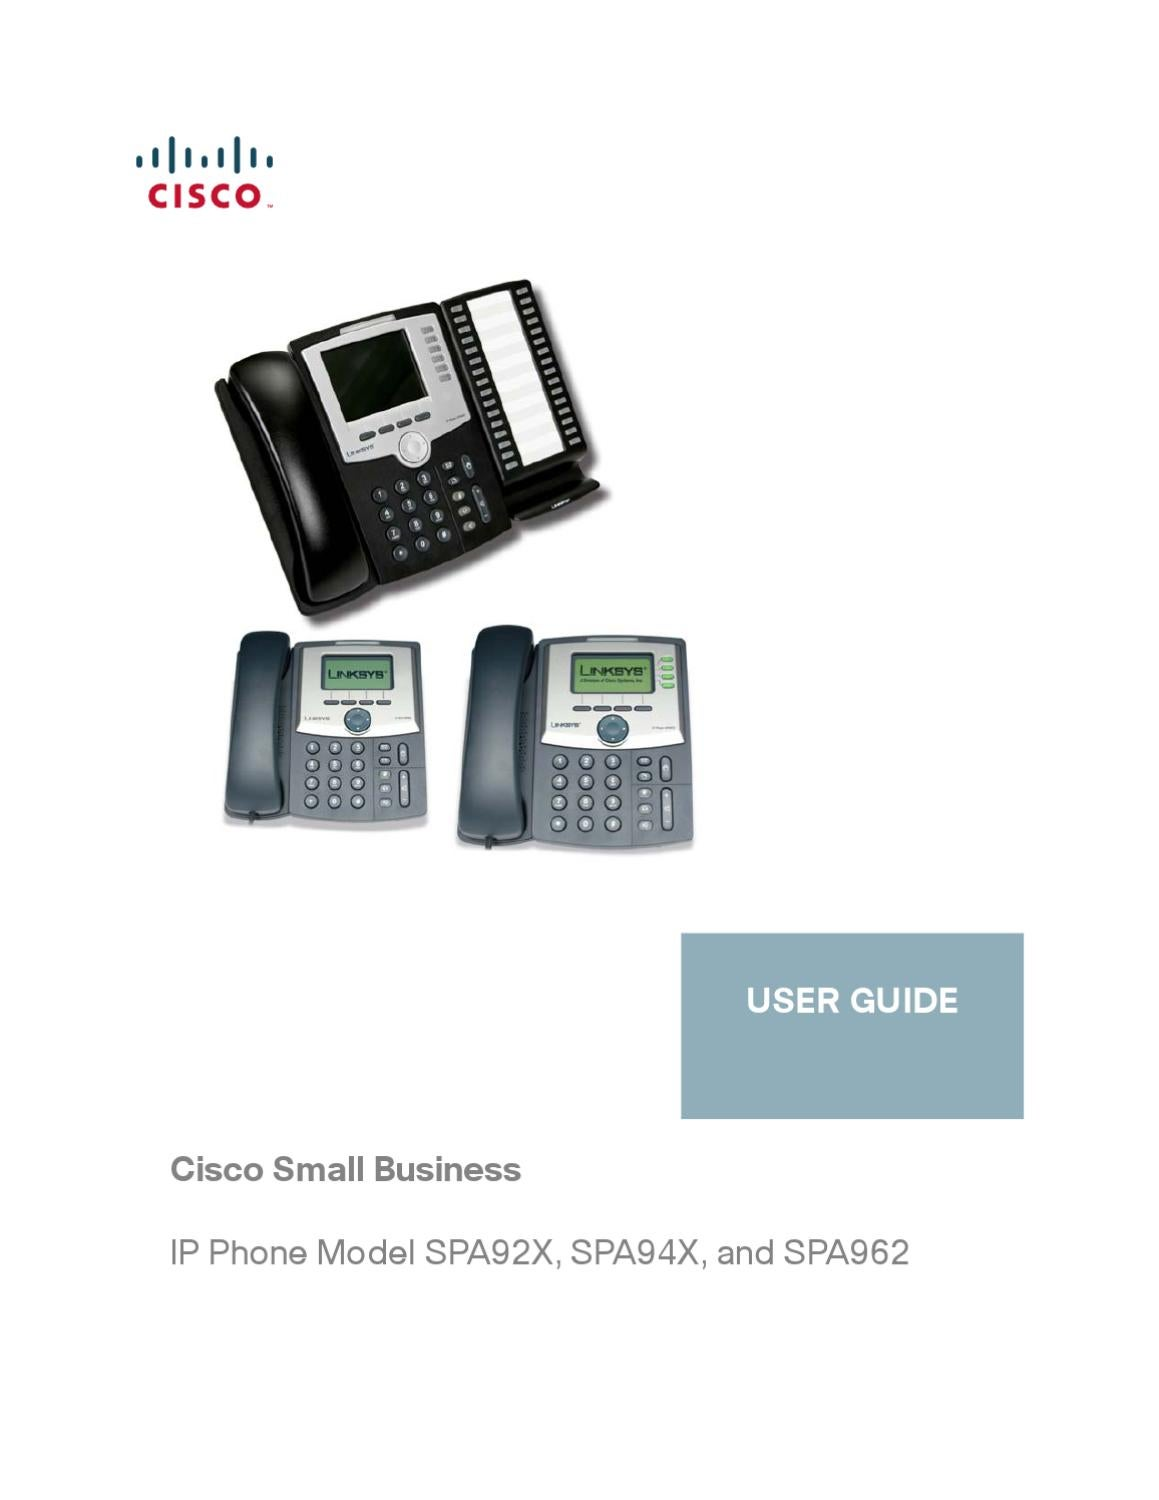 linksys ip phone spa941 manual